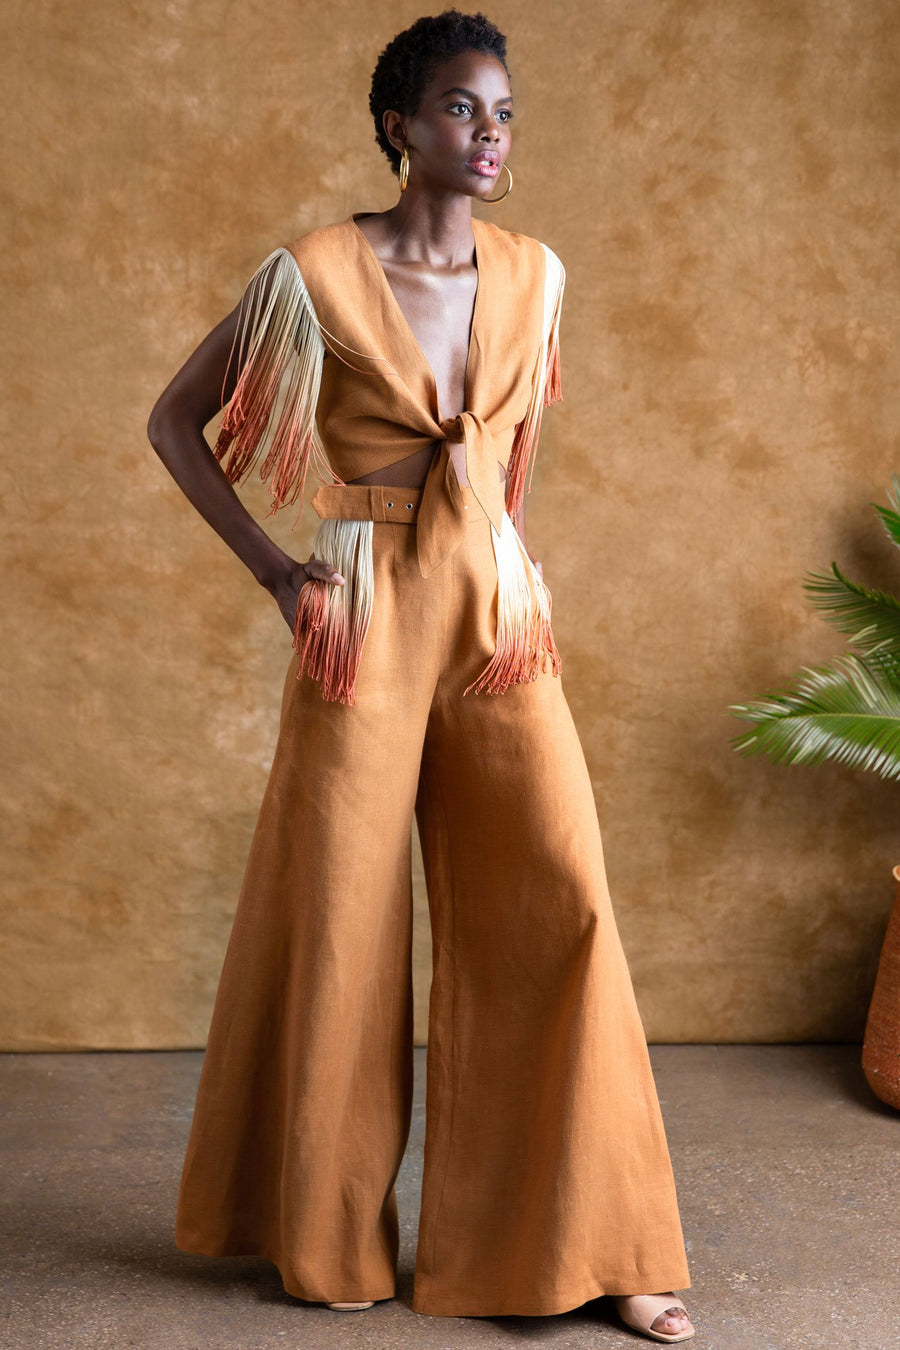 This is a photo of a woman wearing a rust-colored linen 2 piece set. The top is a tie top with a deep v neckline and fringe hanging from the shoulders, as a sleeve. The pants are high waisted with removable belt that has side fringe details that match the top. Model looks to one side with hands in side seam pockets.